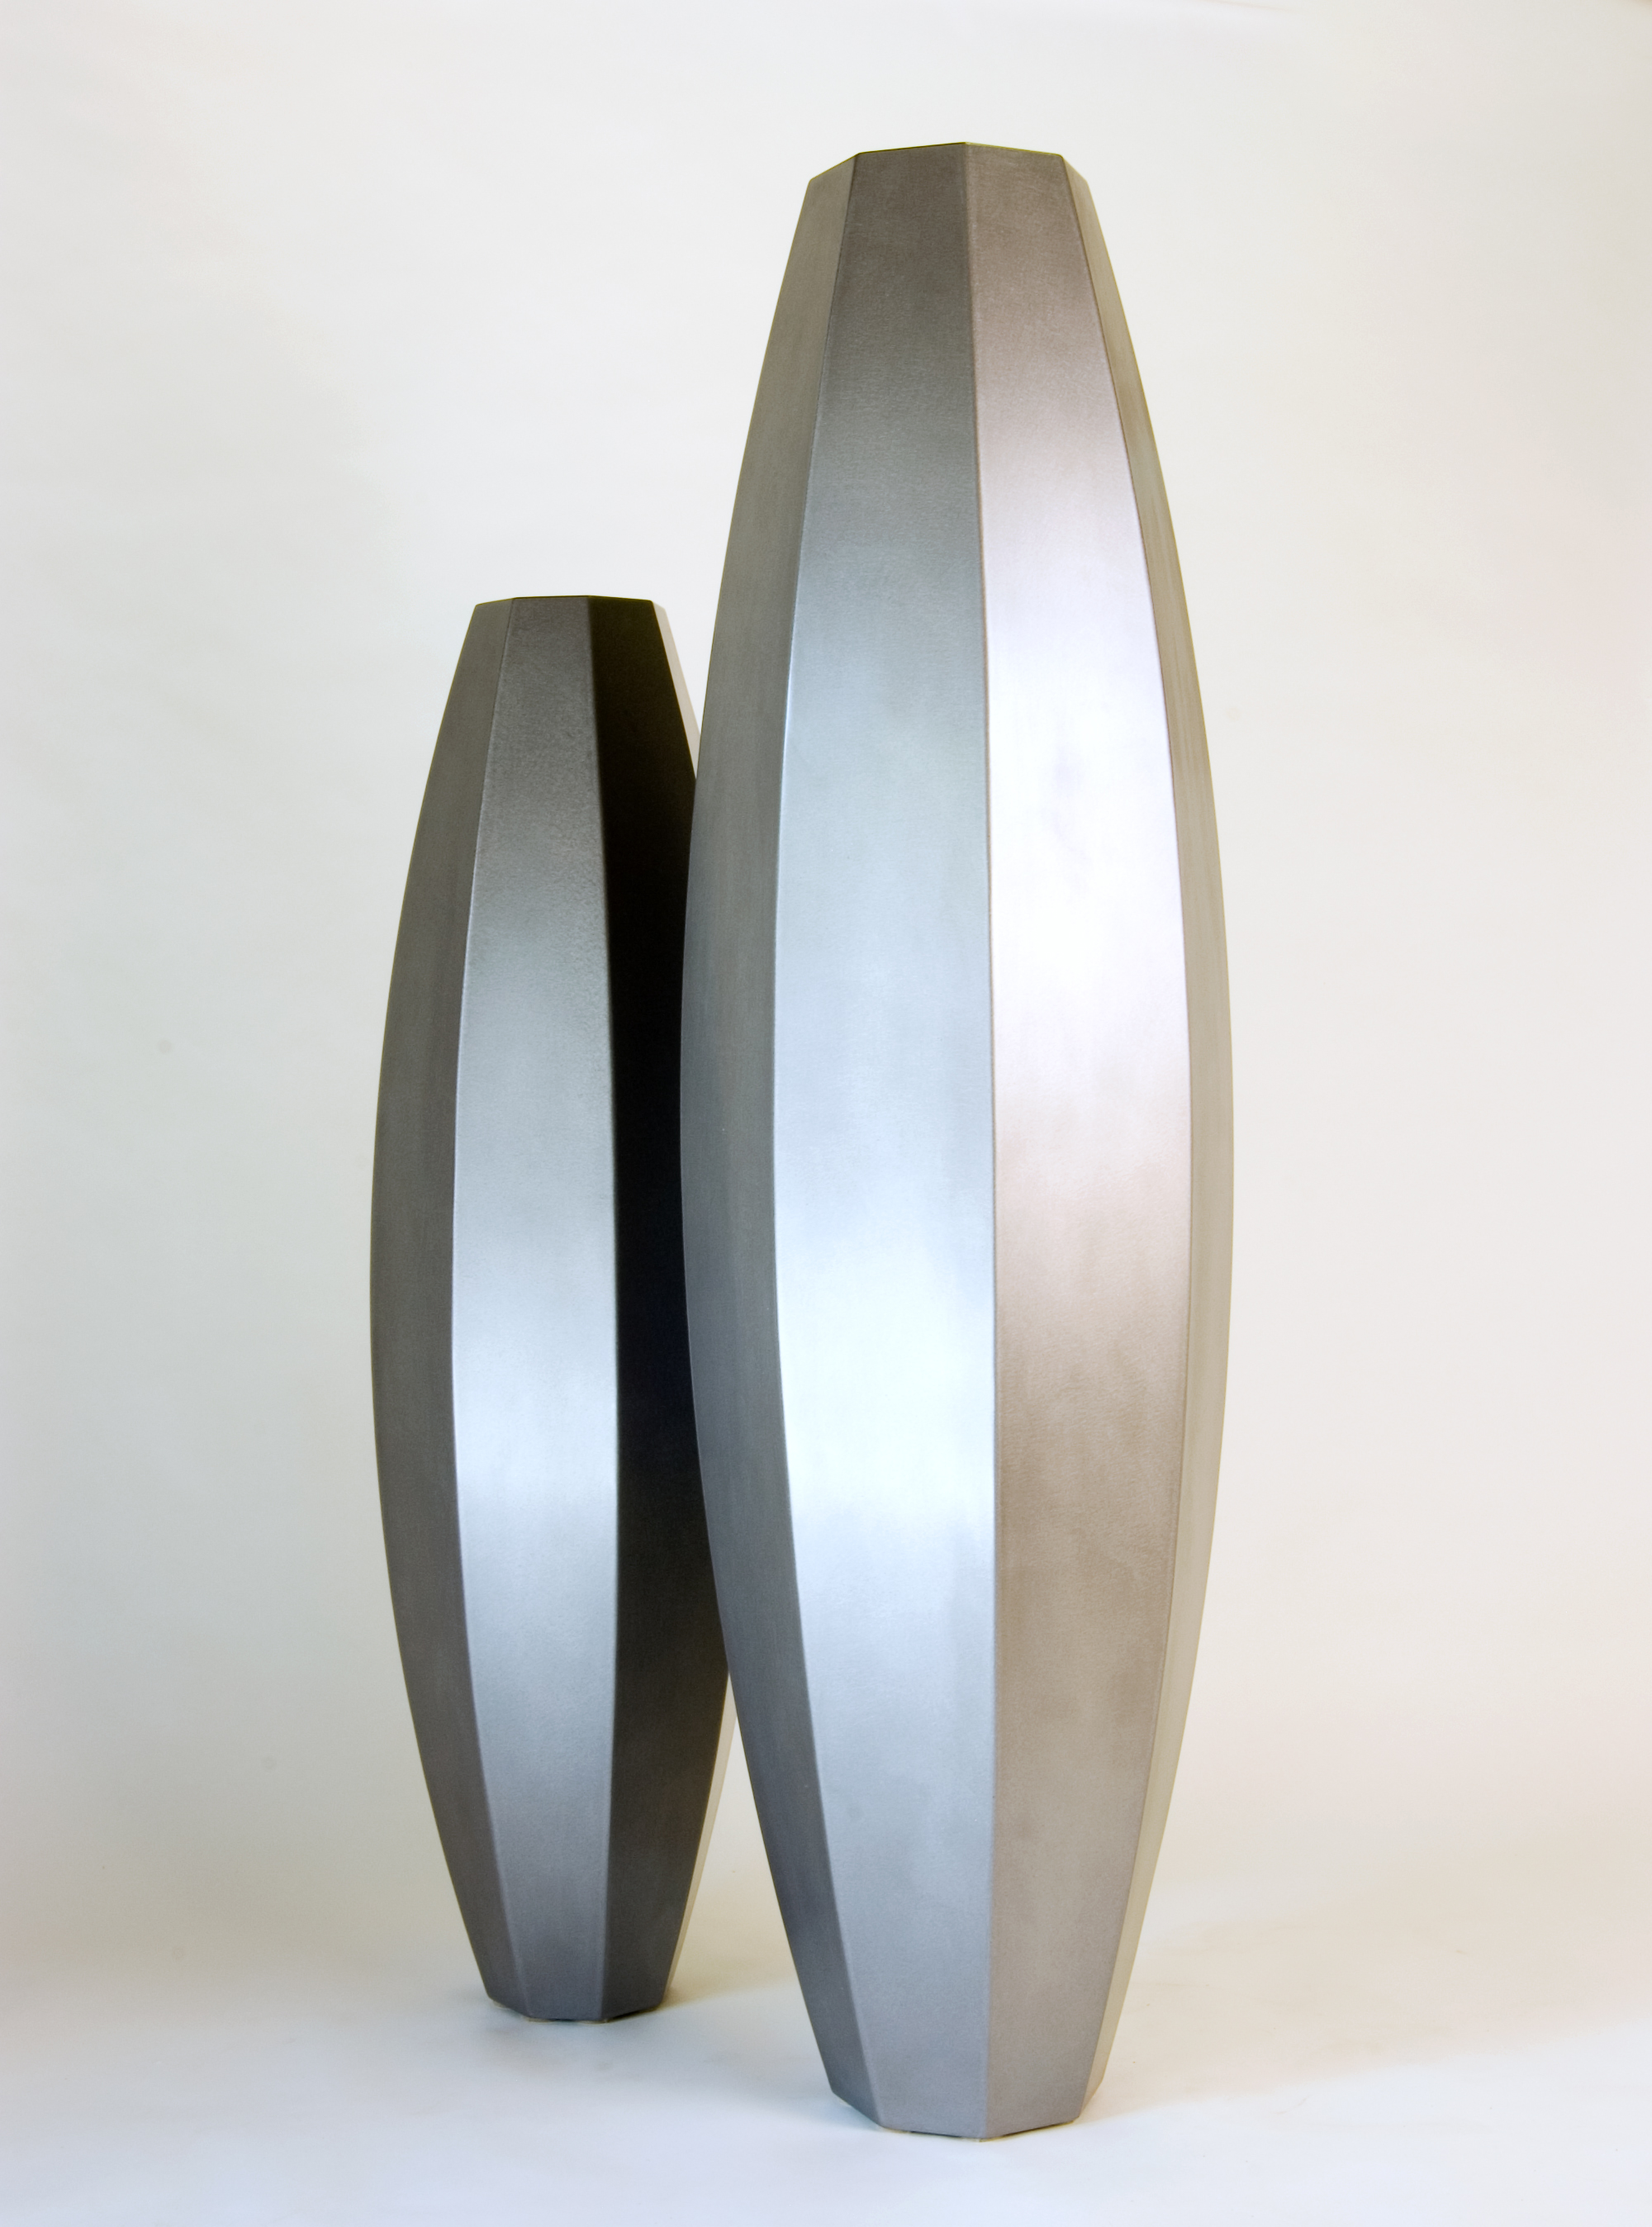 PLANTERS URNS AND VASES Gillberg Design Inc